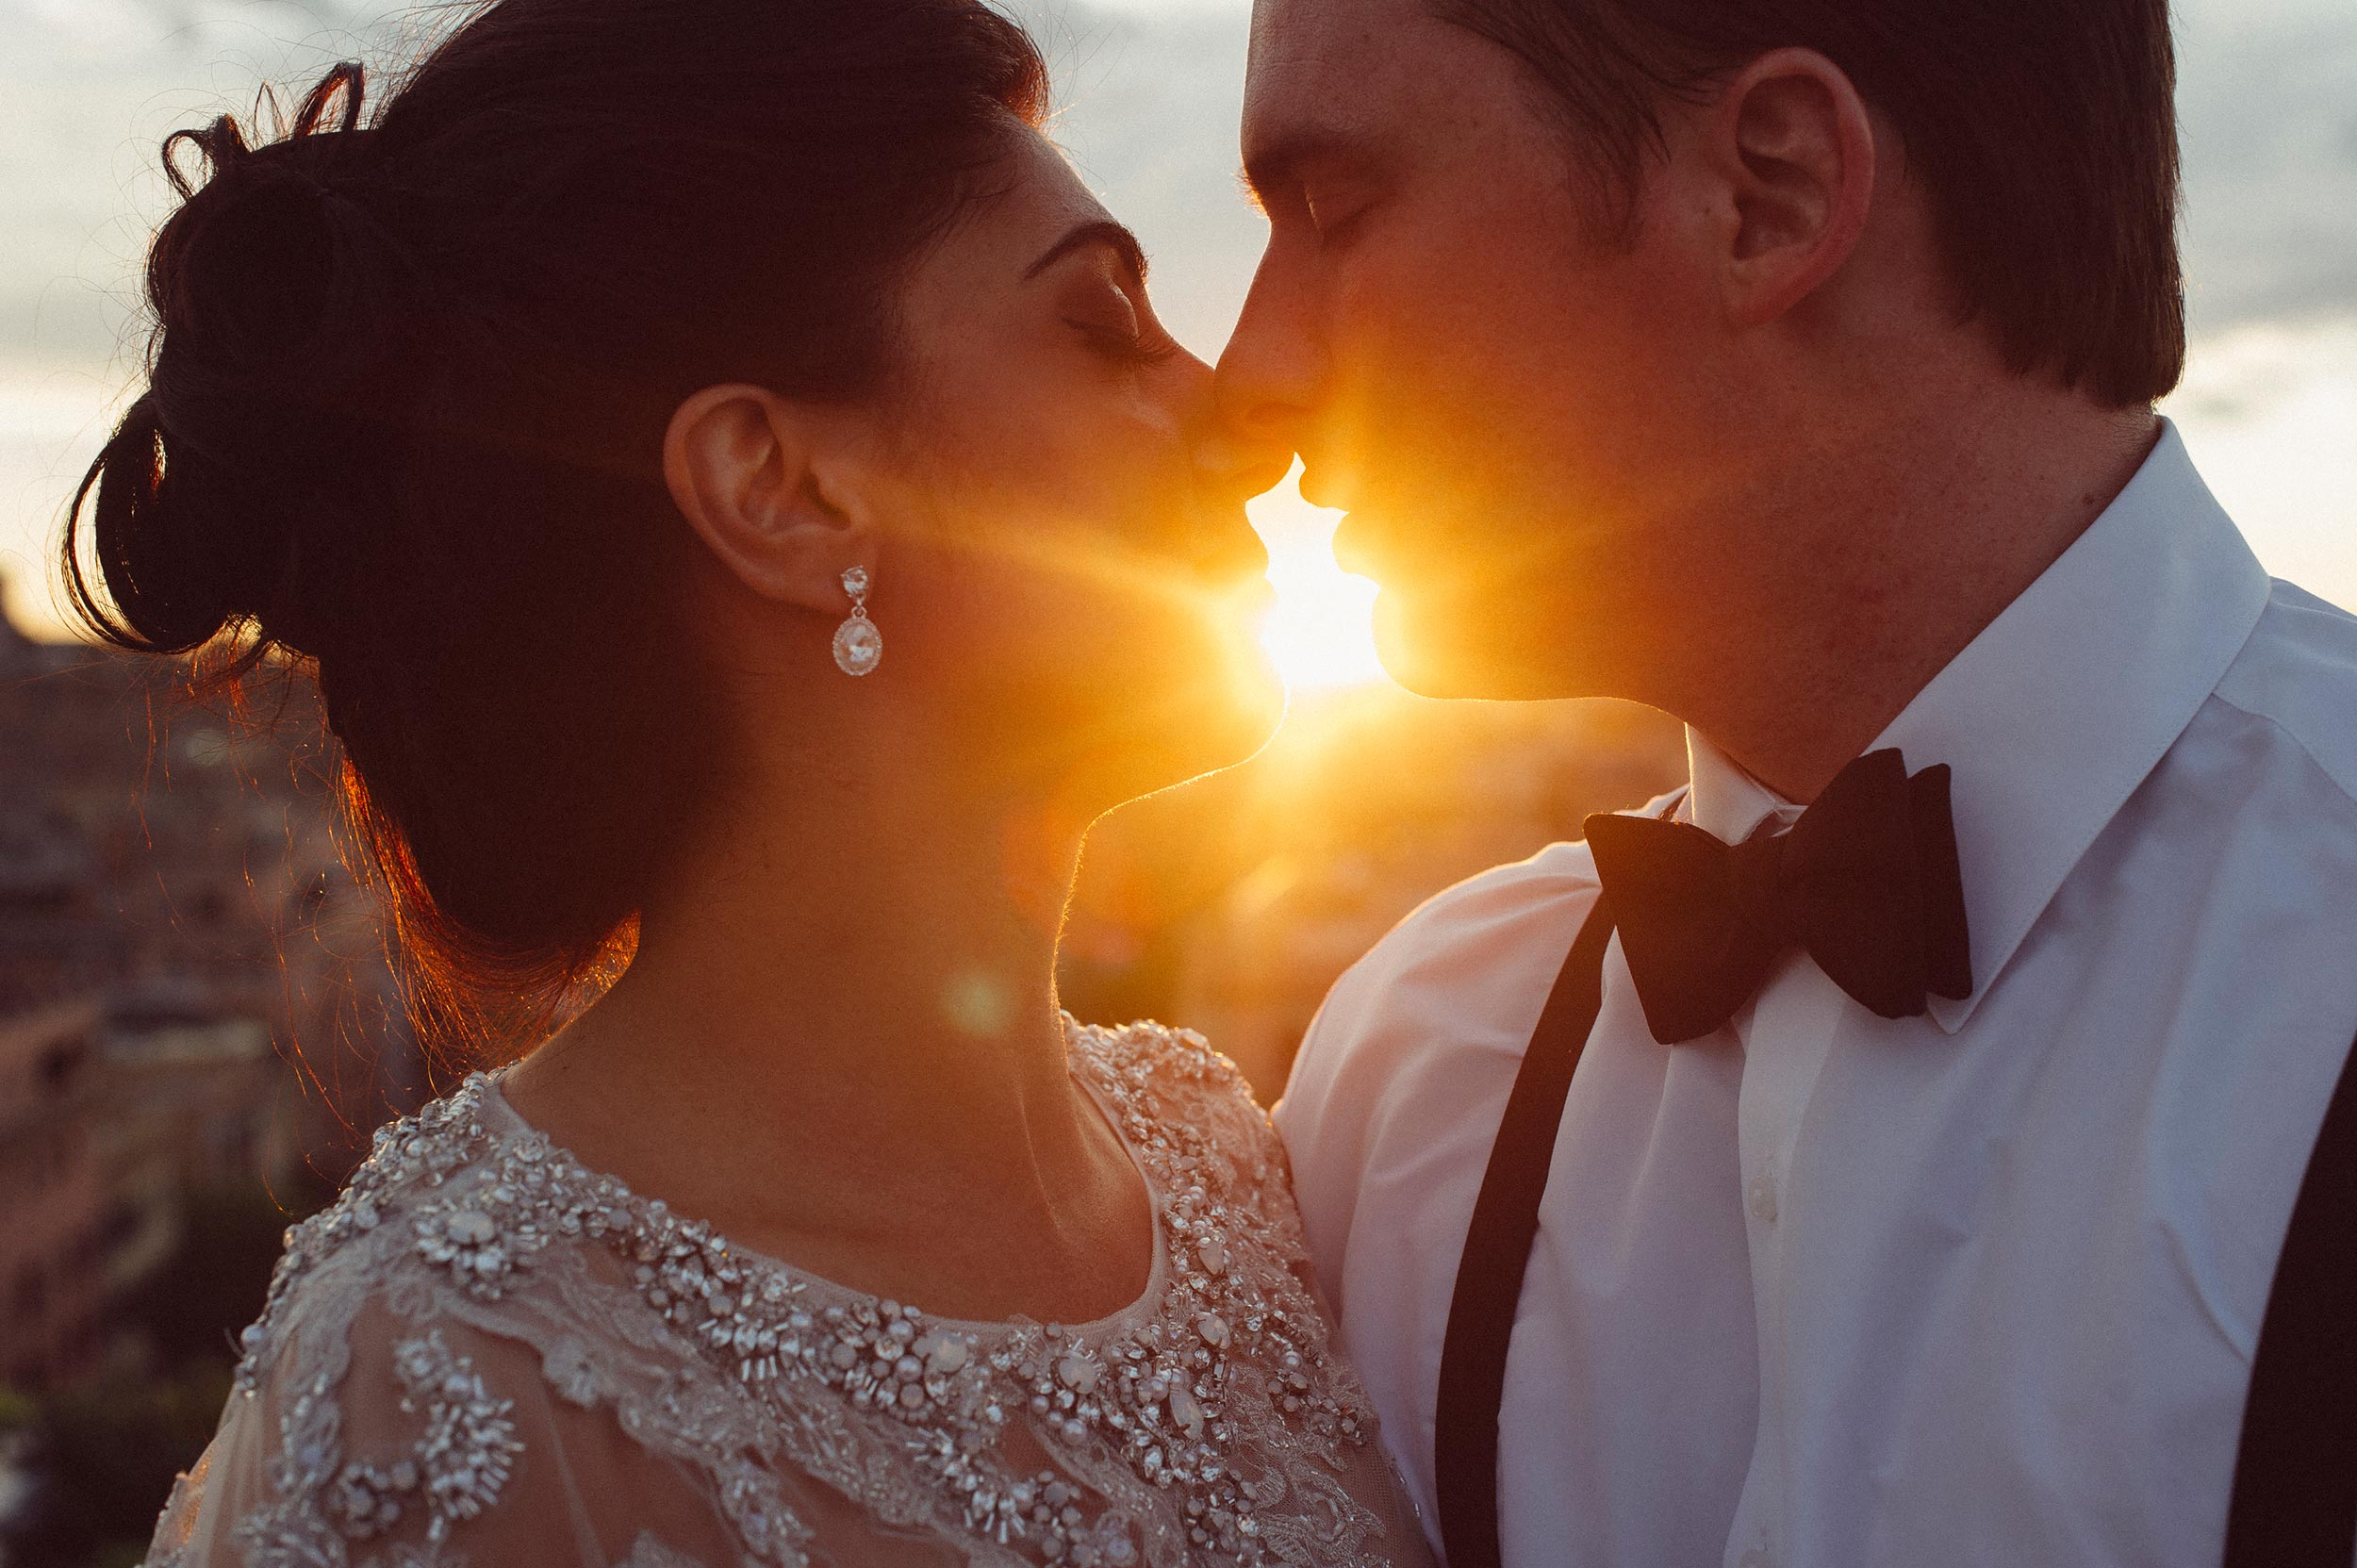 bride-and-groom-kissing-at-sunset-in-rome-vatican.jpg